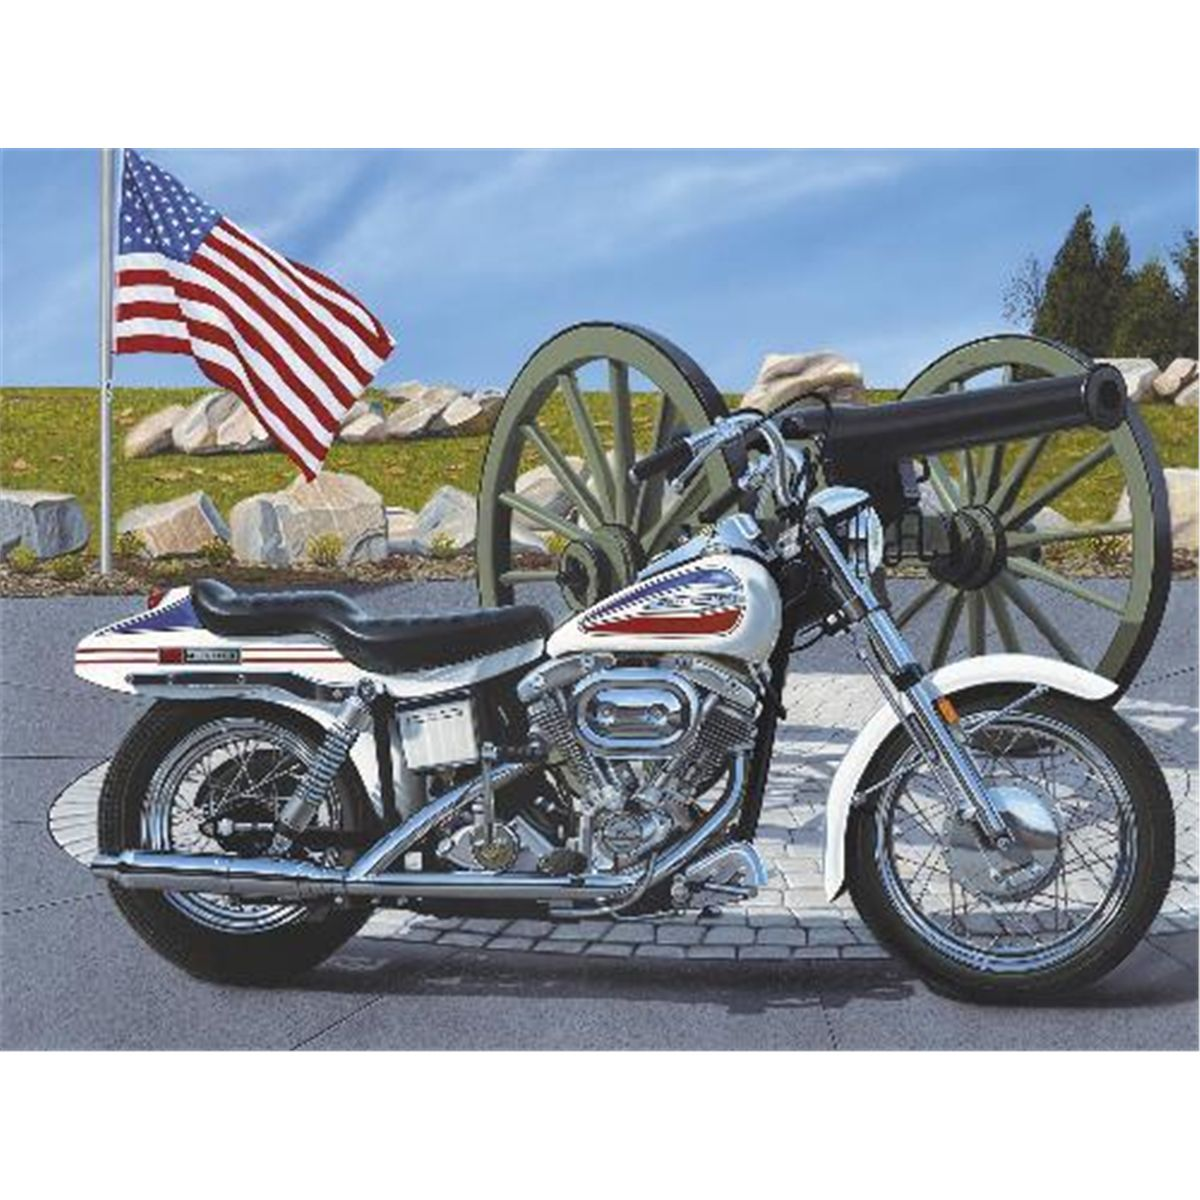 Live Motorcycle Auctions